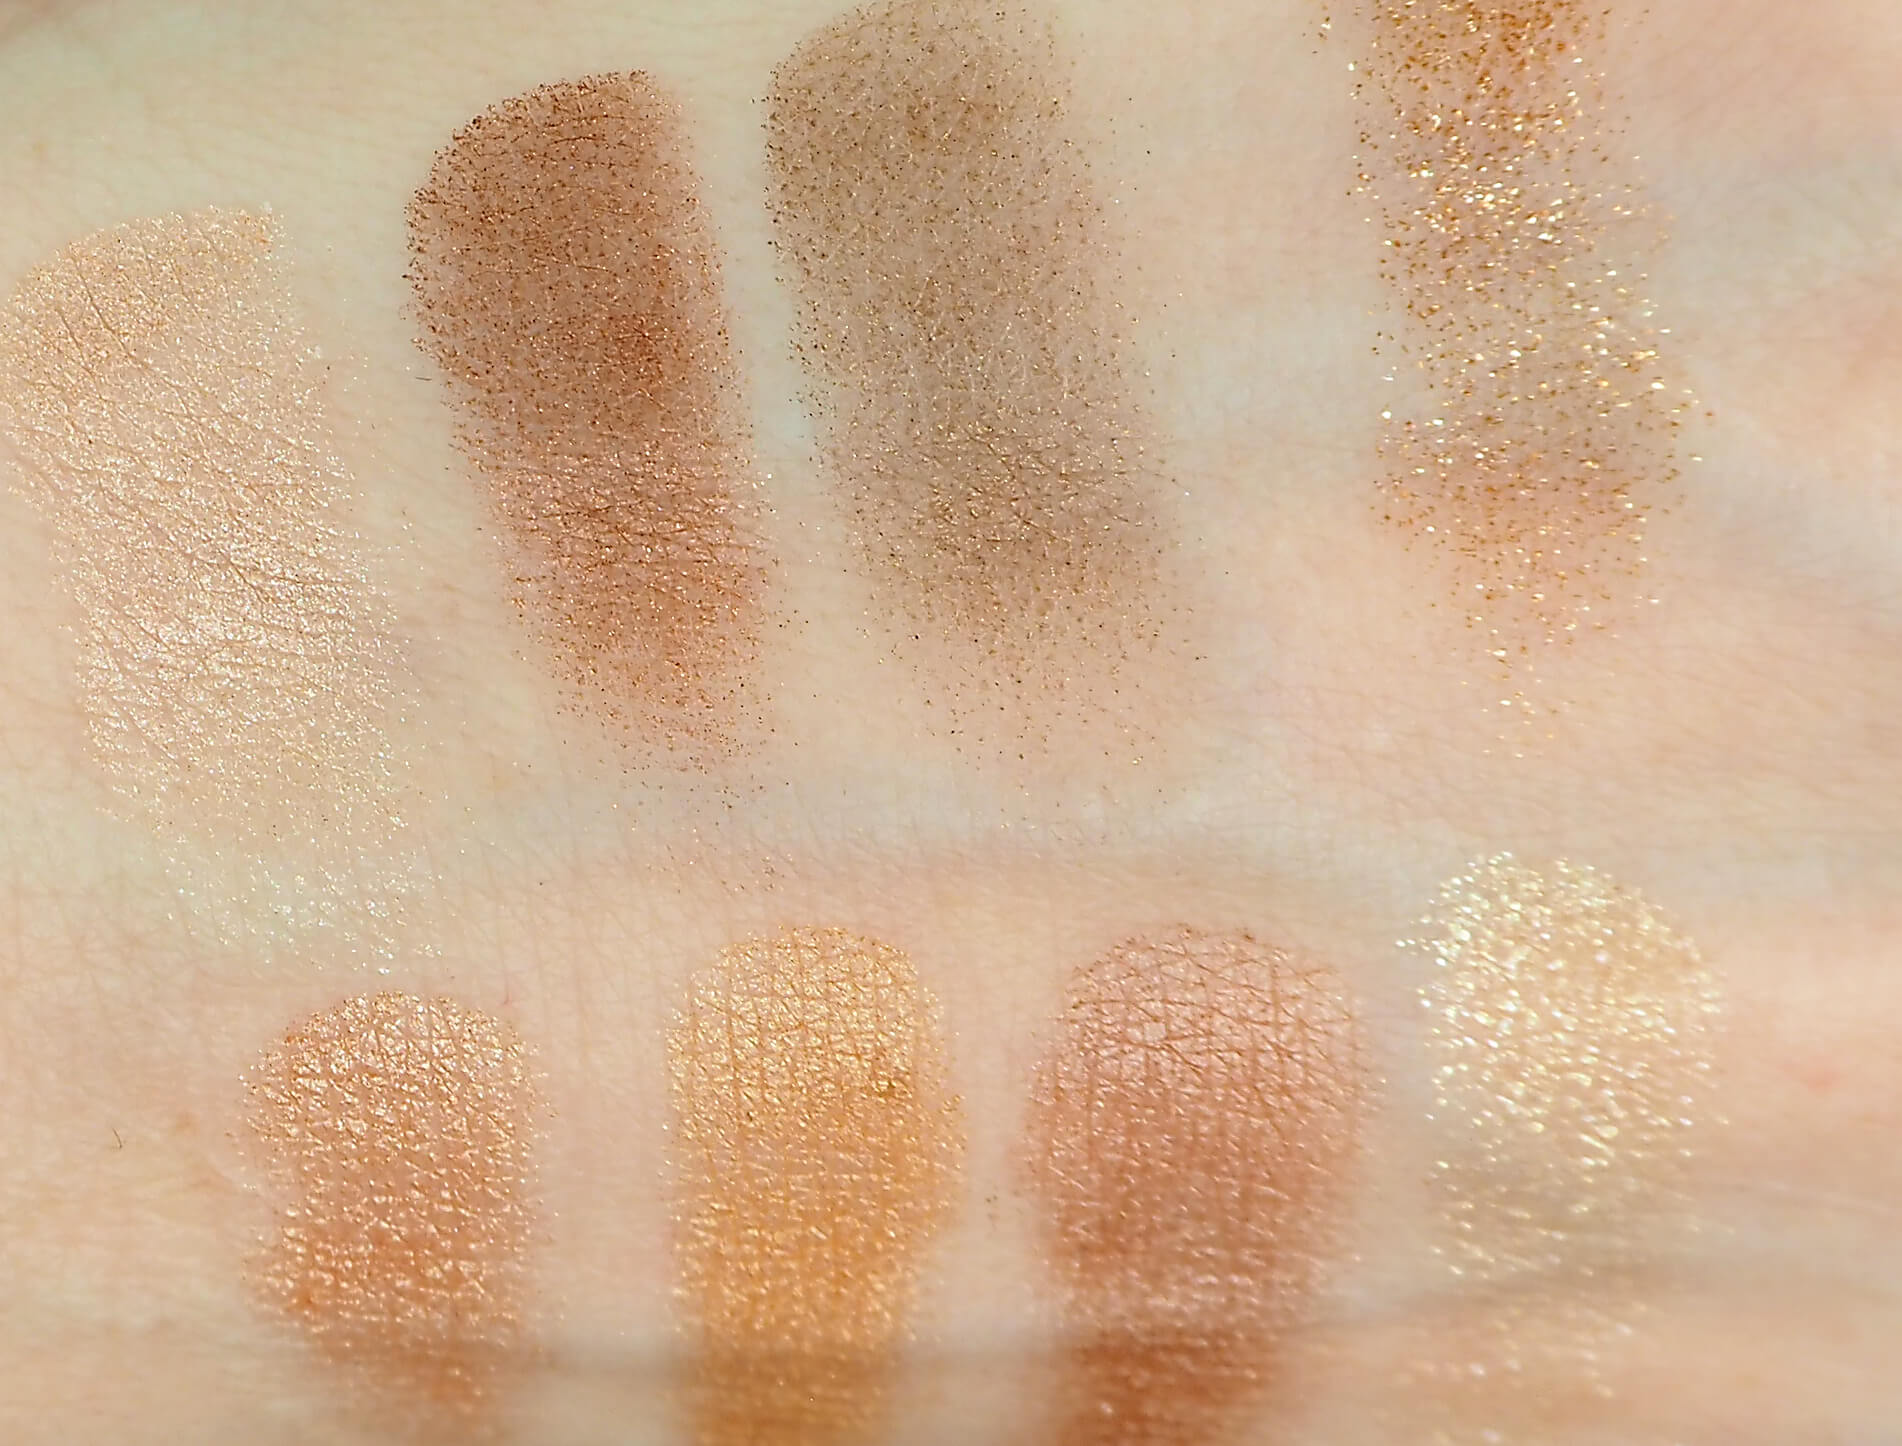 The Dolce Vita (górny rząd) The Legendary Muse (dolny rząd) Swatches